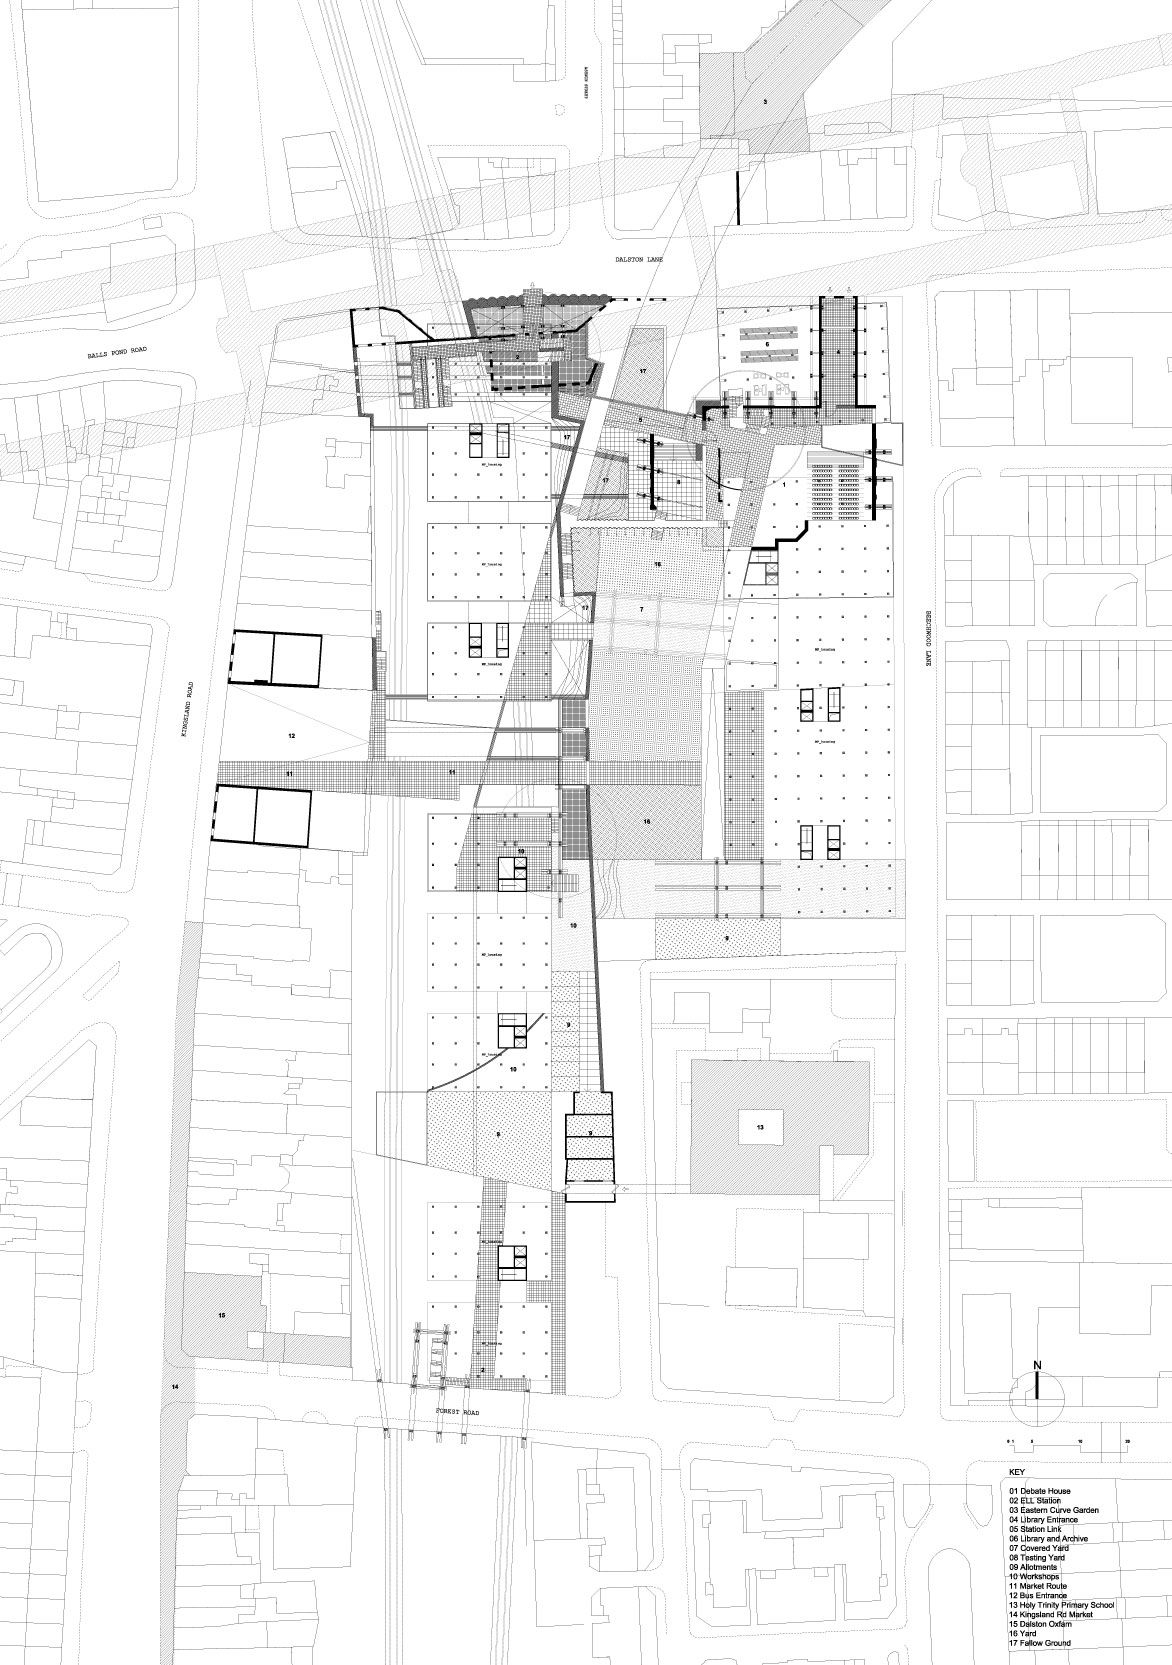 School garden design drawing - Aa School Of Architecture Projects Review 2011 Diploma 11 Jon Charles Lopez